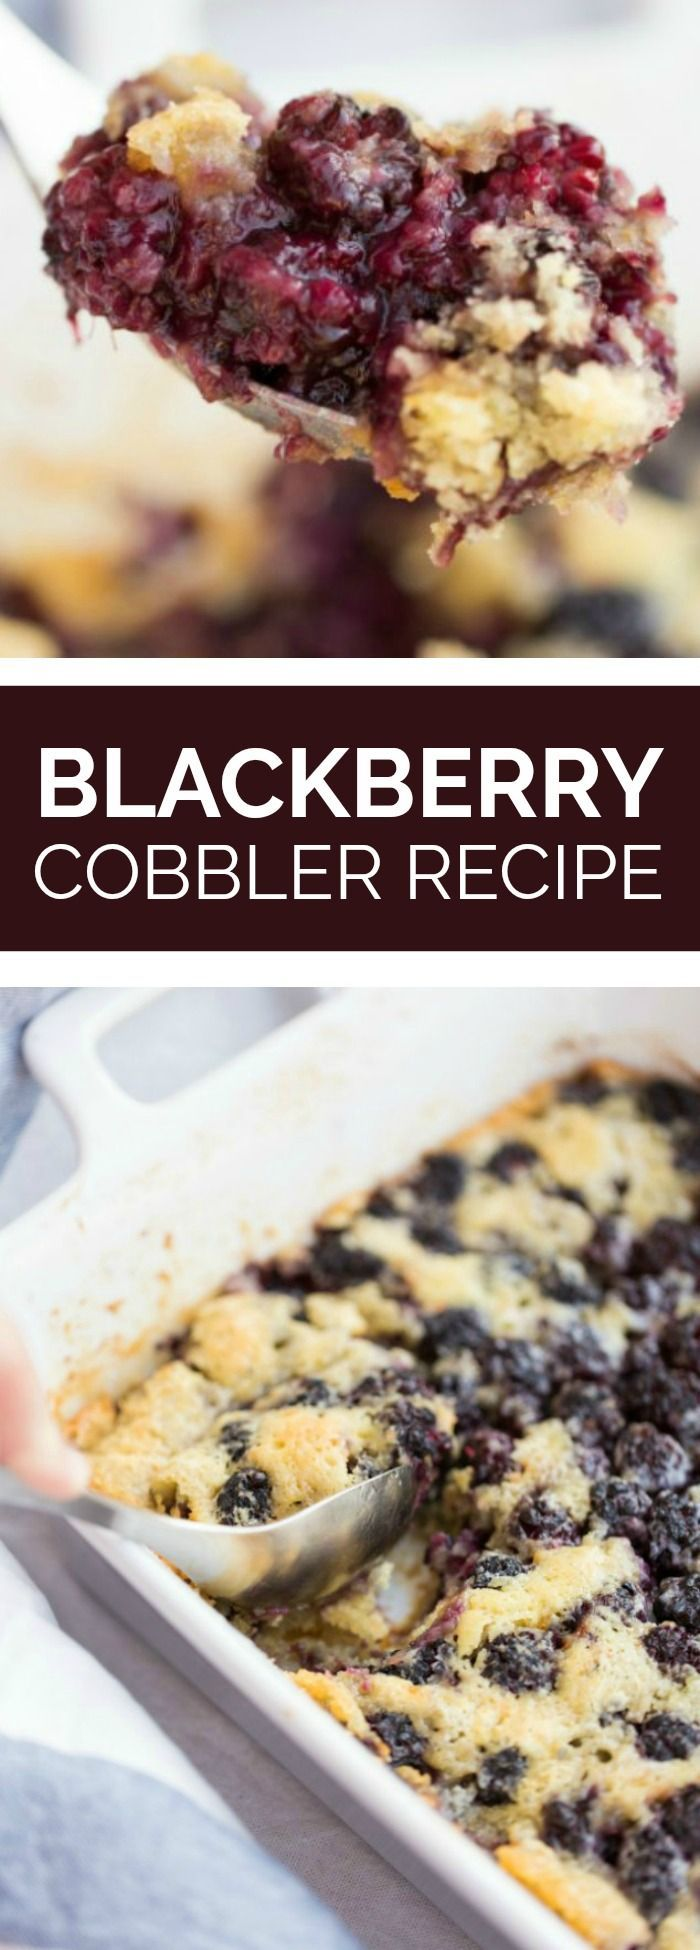 This the the Blackberry Cobbler recipe my grandmother used to make. It tastes amazing and is super easy. Totally remind me of my childhood every time we make it.